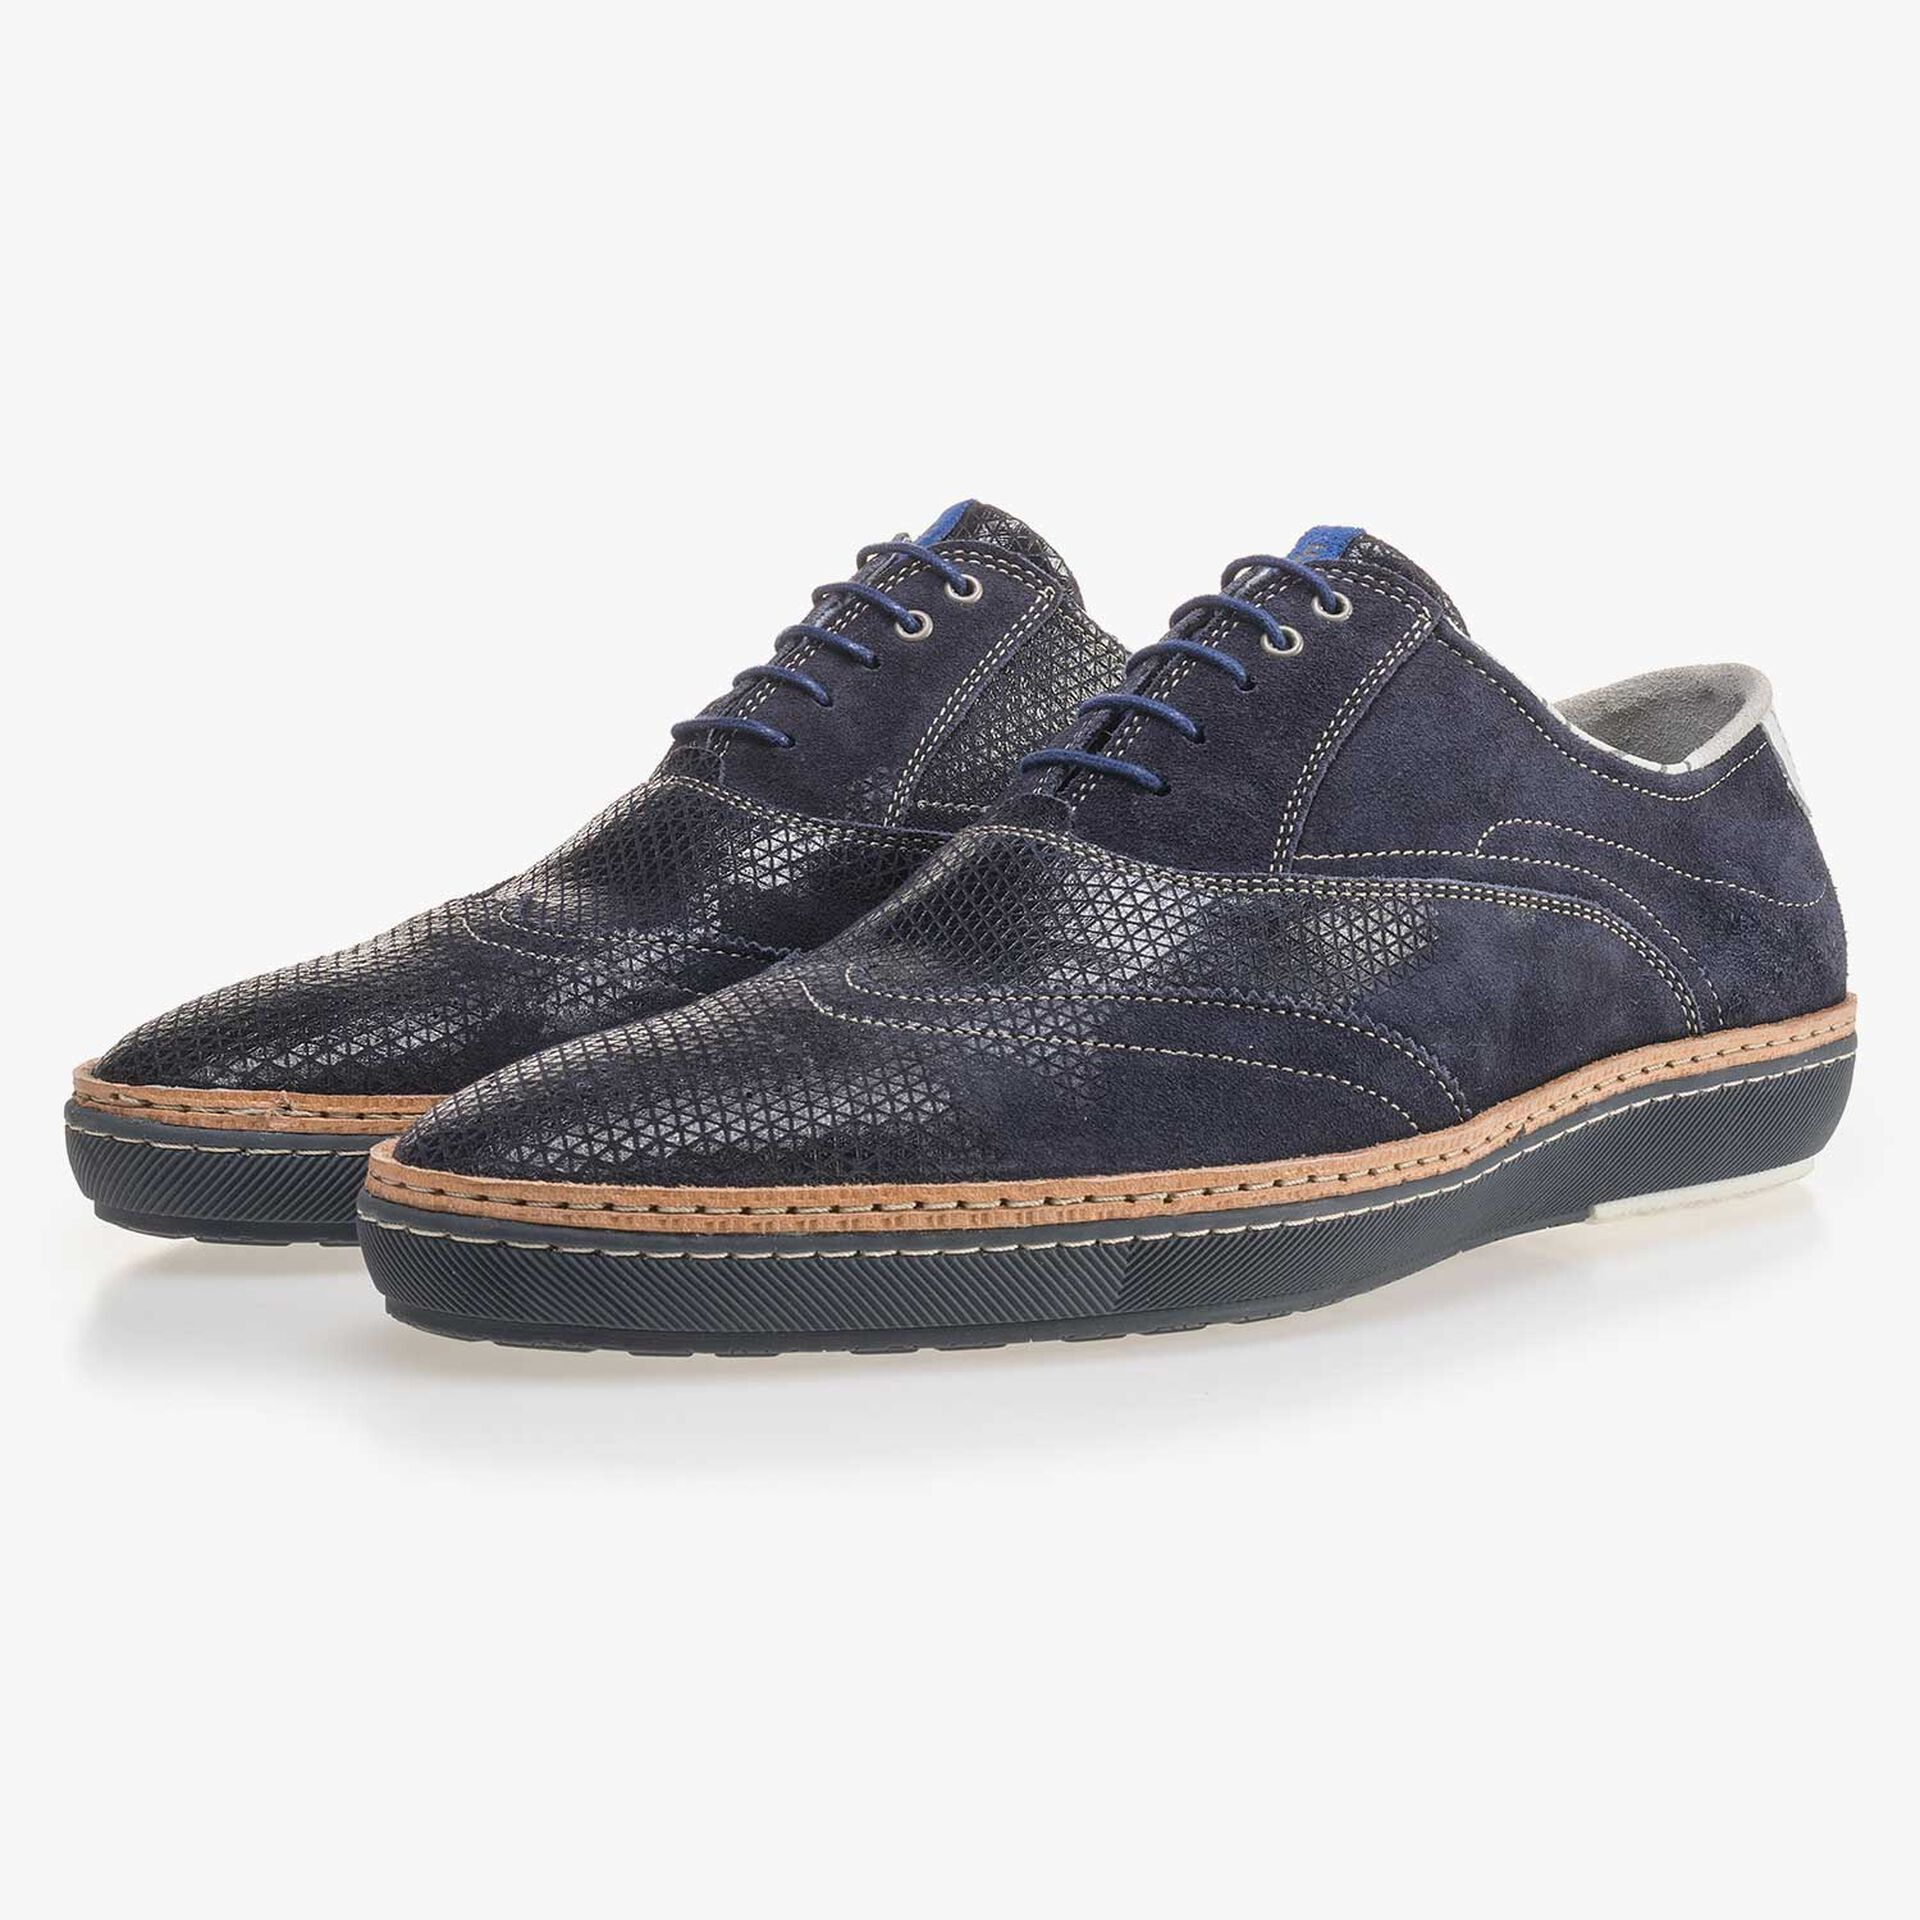 Dark blue brogue suede leather sneaker